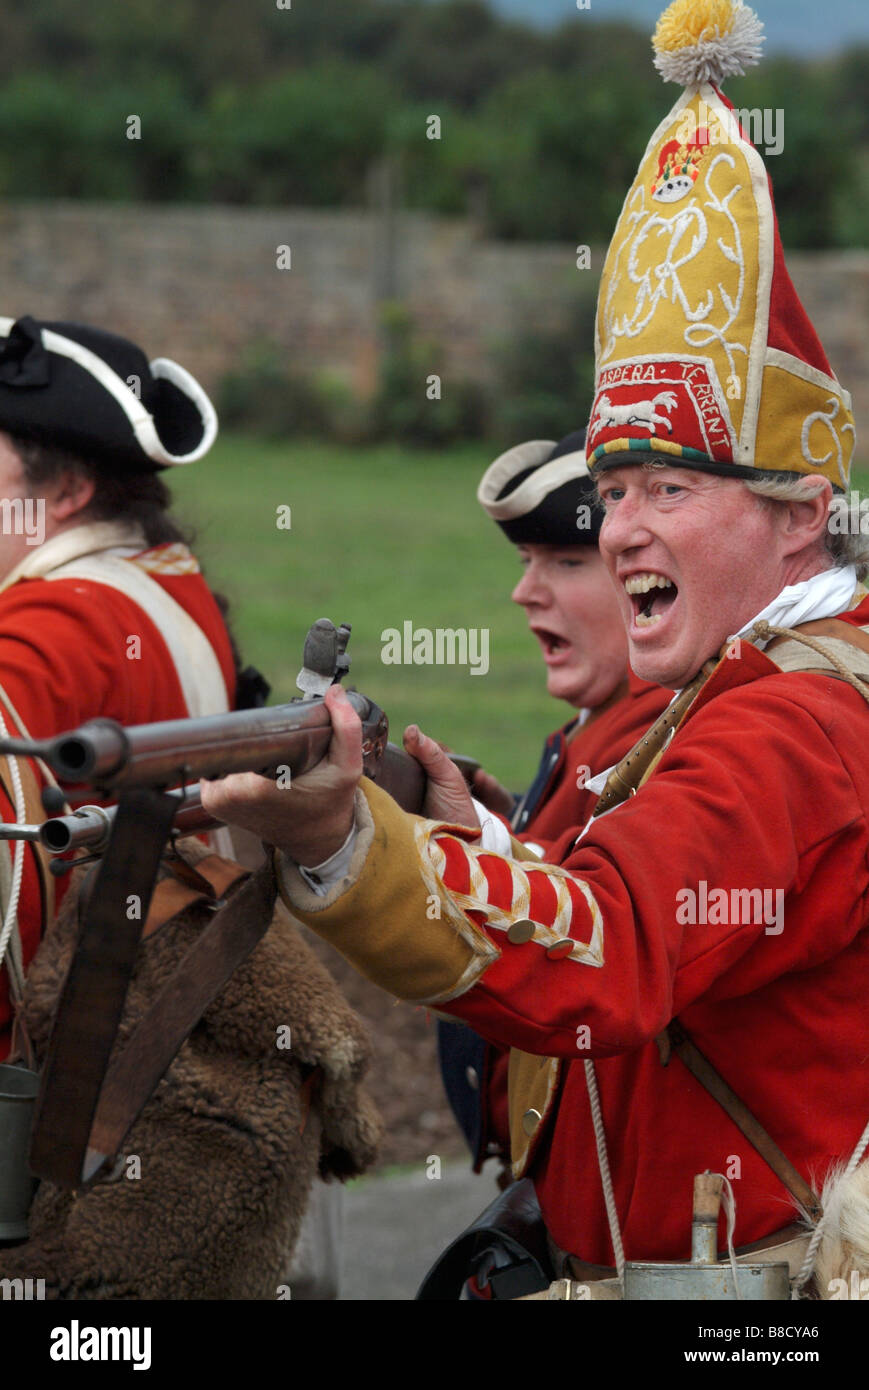 Redcoat soldiers charging their bayonets at the 2008 re-enactment of the Battle of Prestonpans, Scotland. Stock Photo